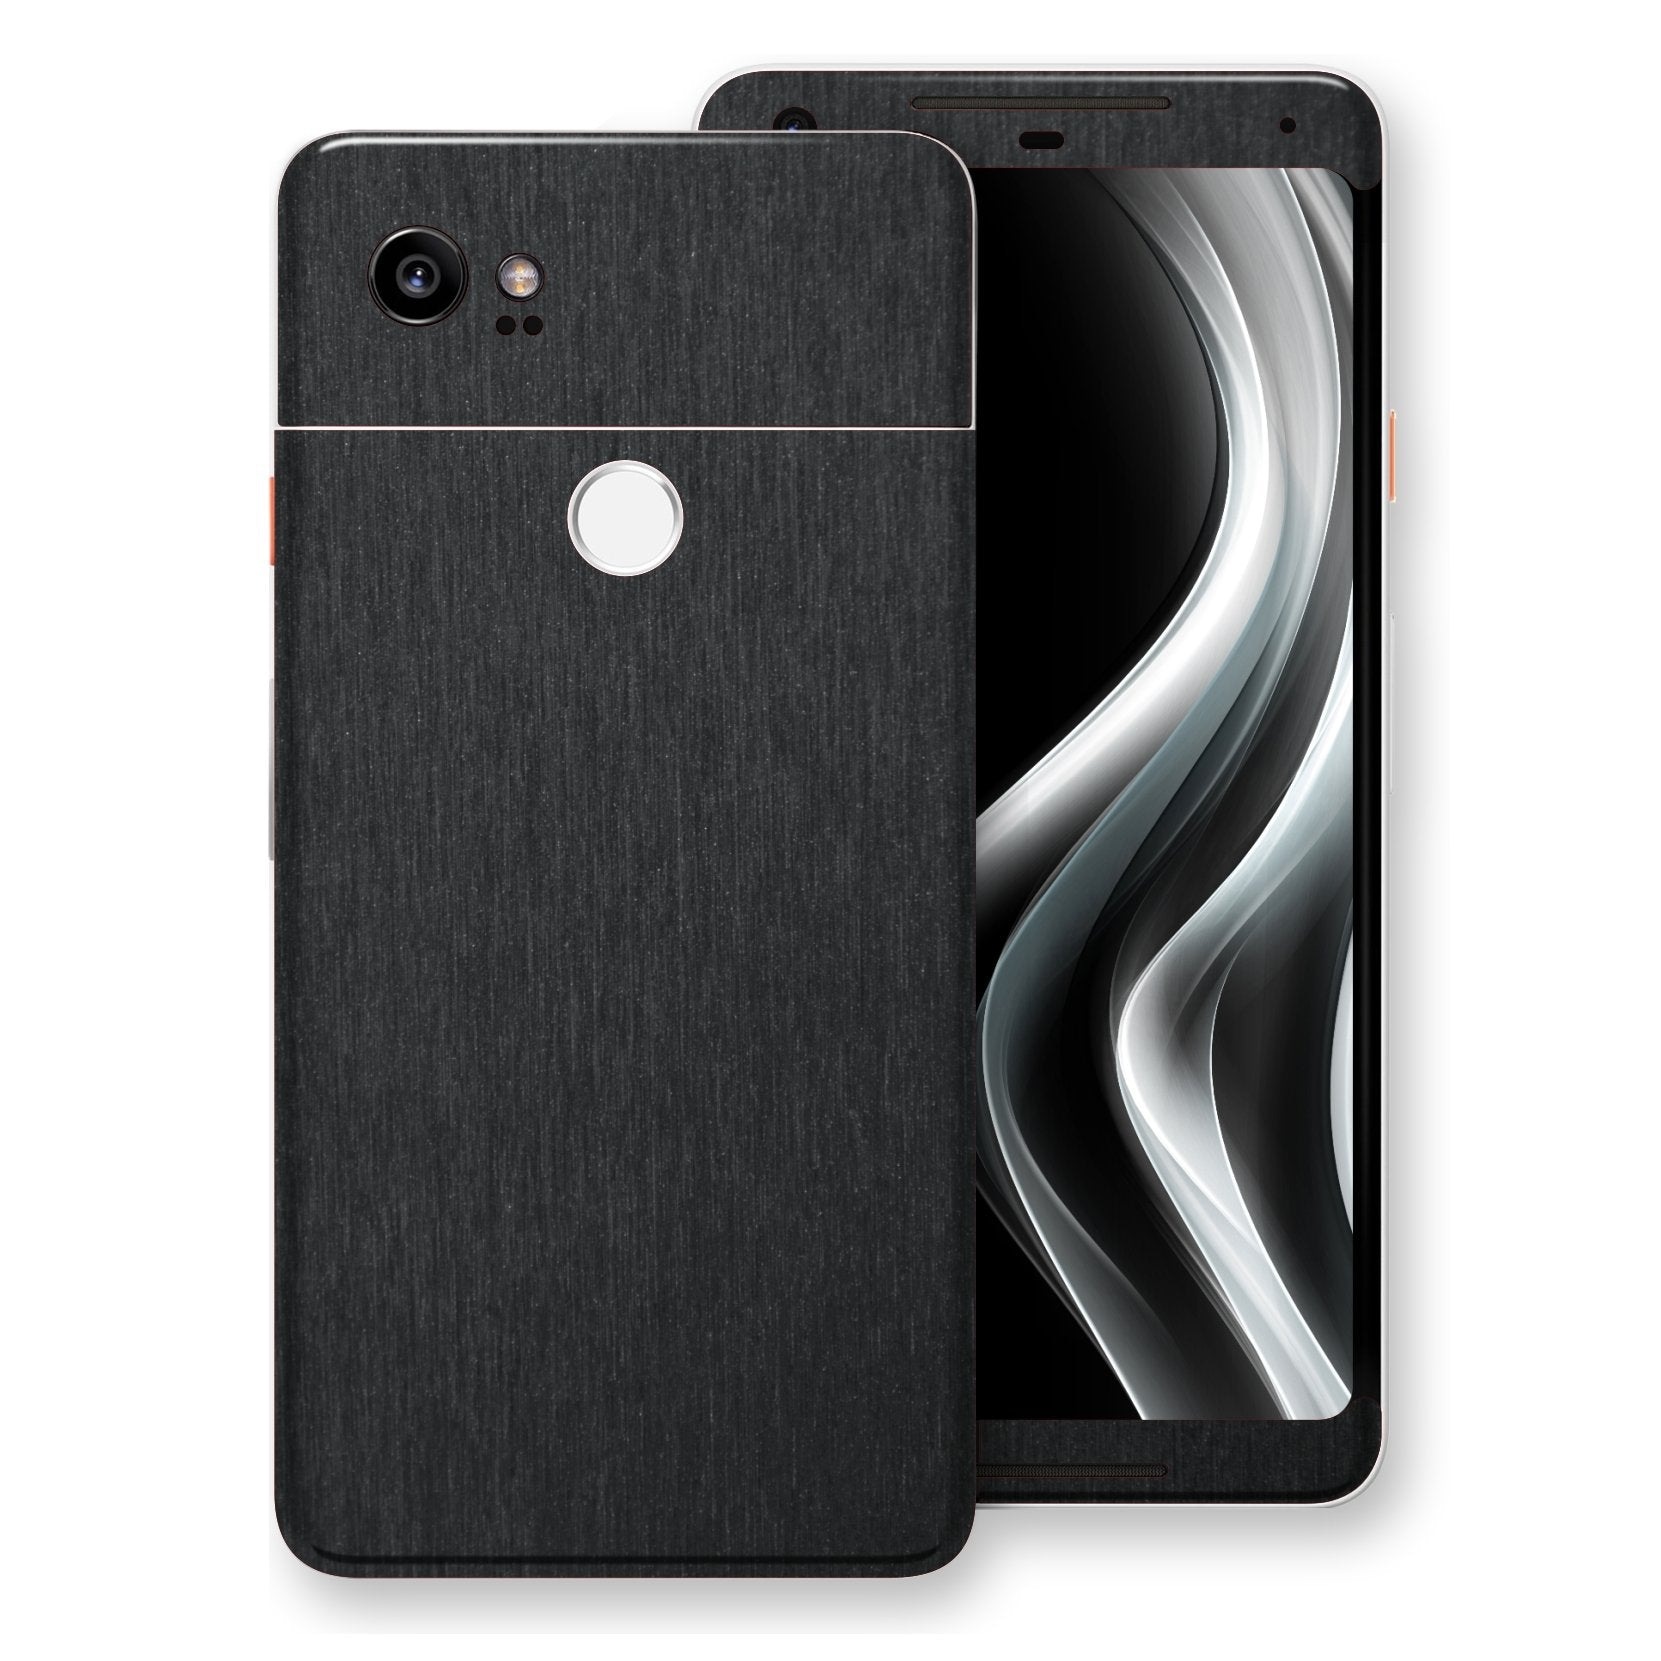 Google Pixel 2 XL Brushed Black Metallic Metal Skin, Decal, Wrap, Protector, Cover by EasySkinz | EasySkinz.com